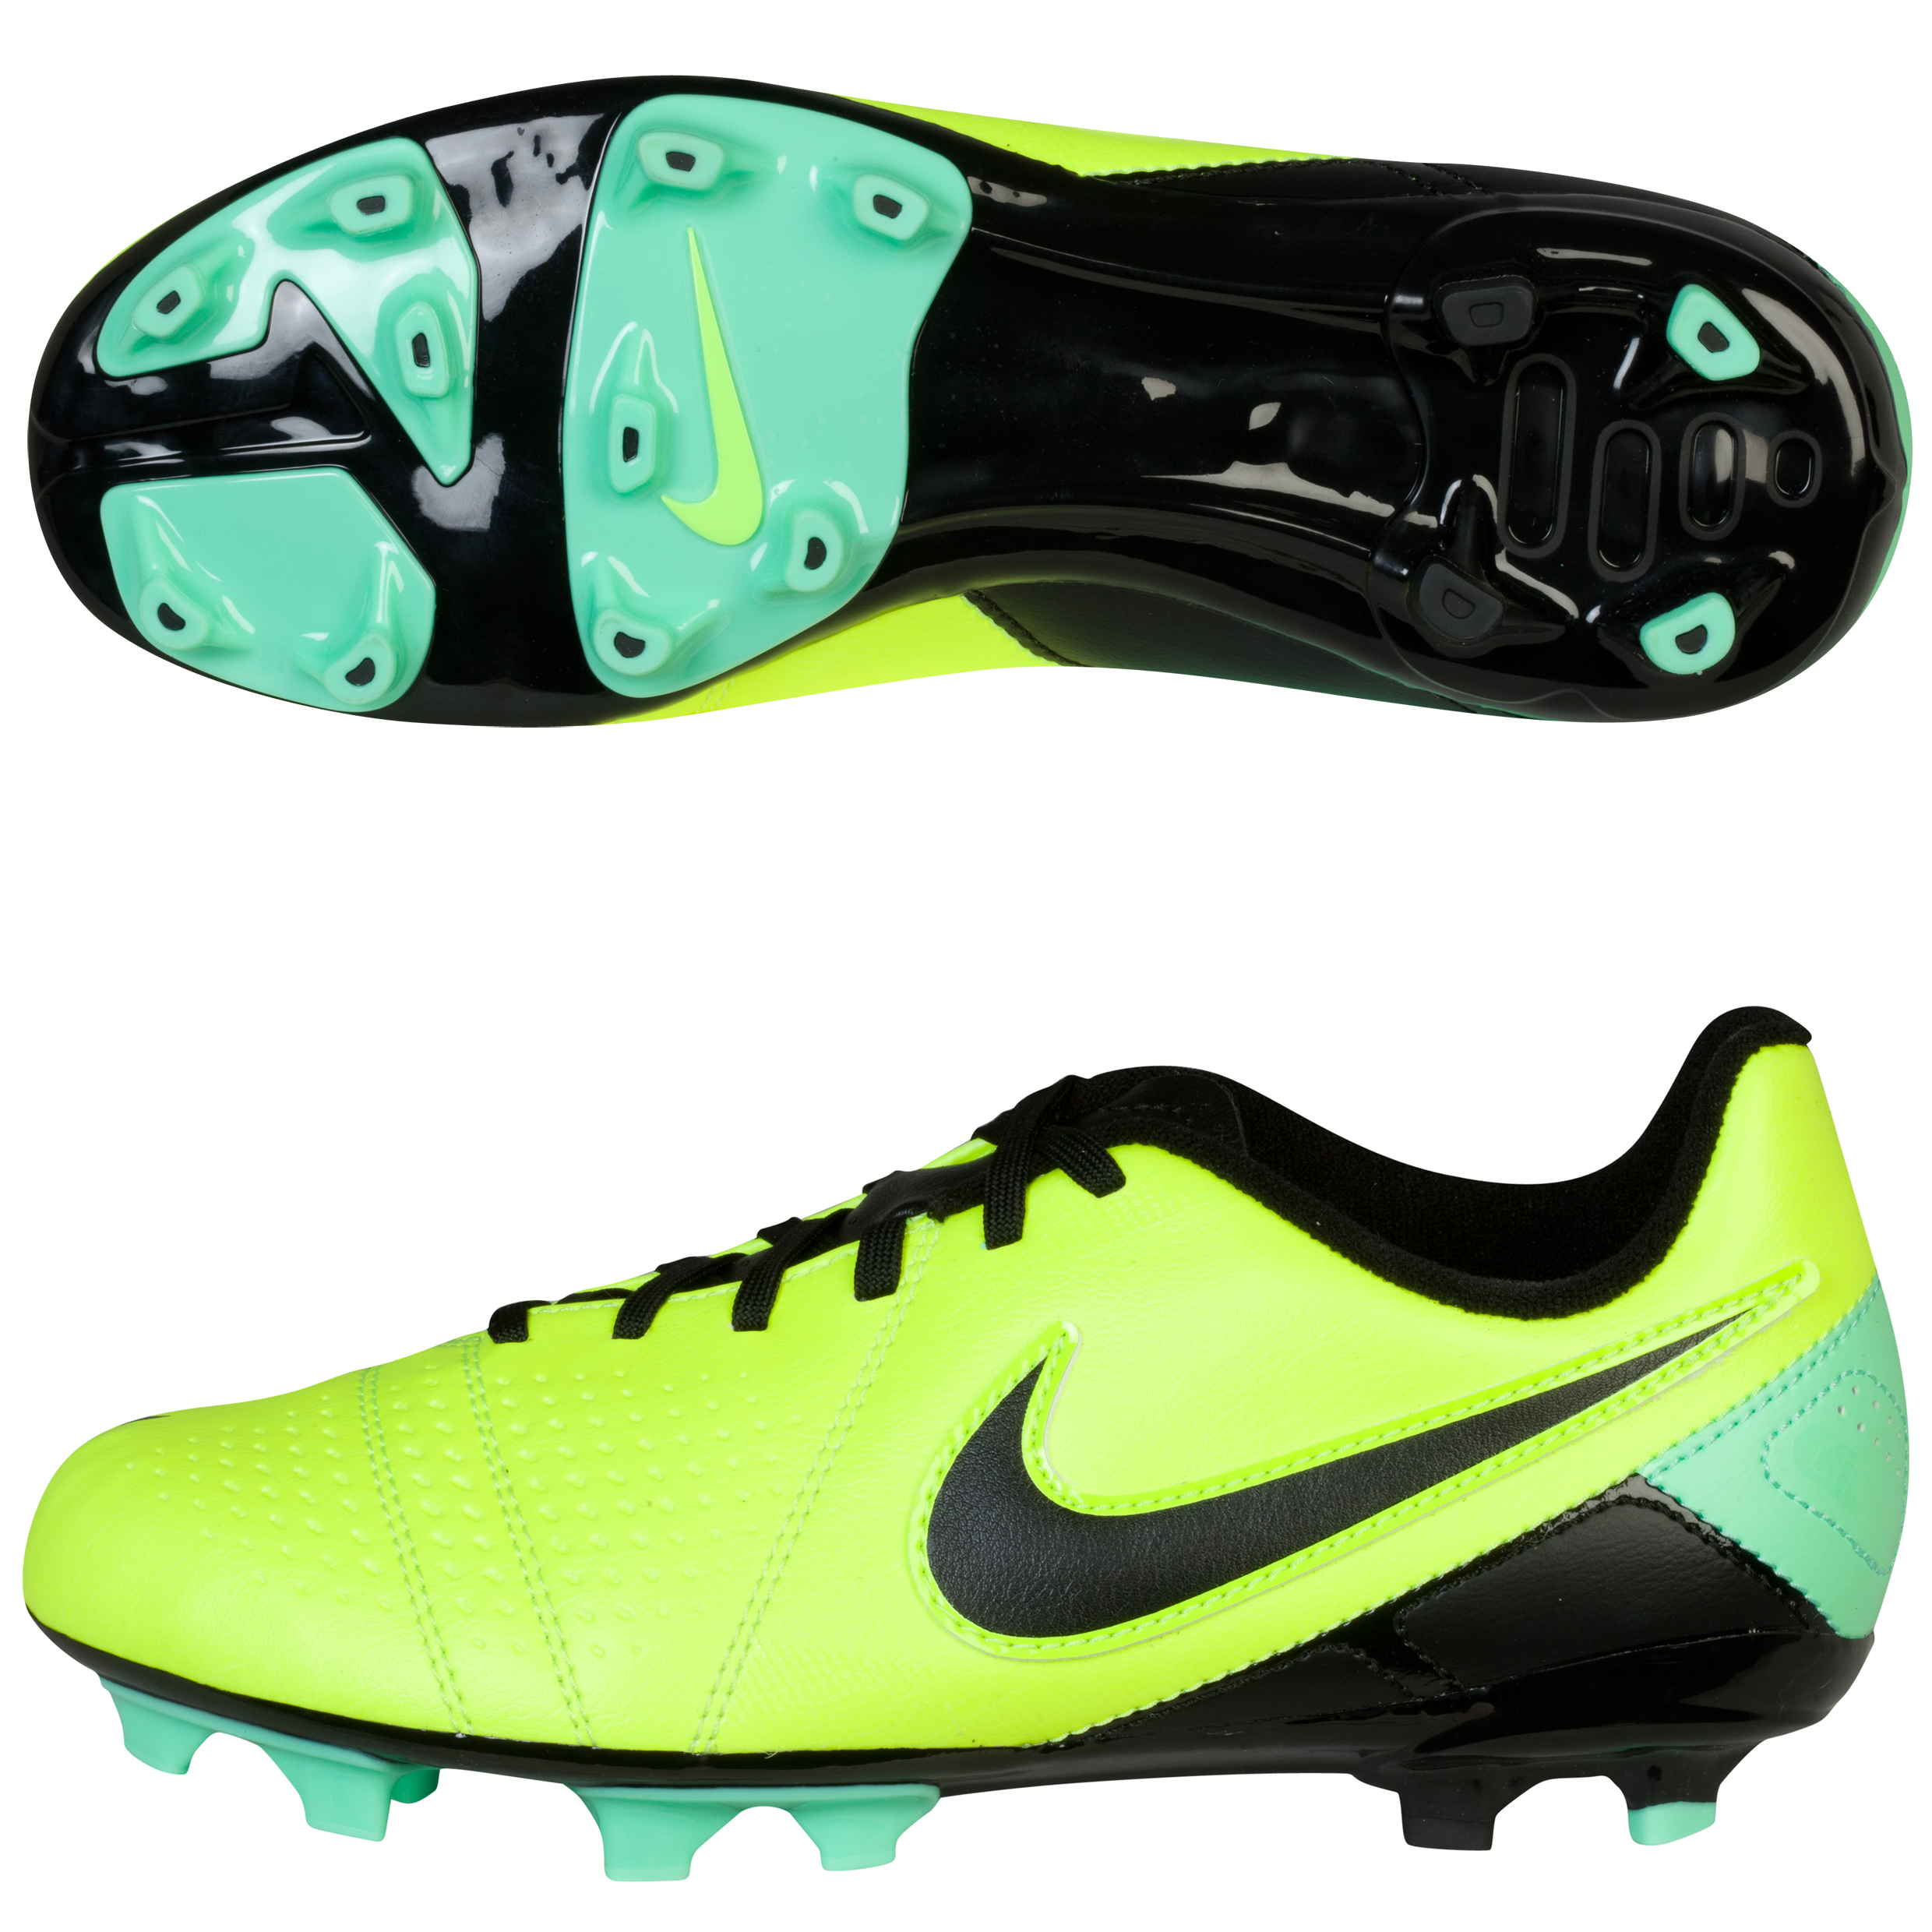 Nike CTR360 Libretto III Firm Ground Football Boots - Kids Yellow